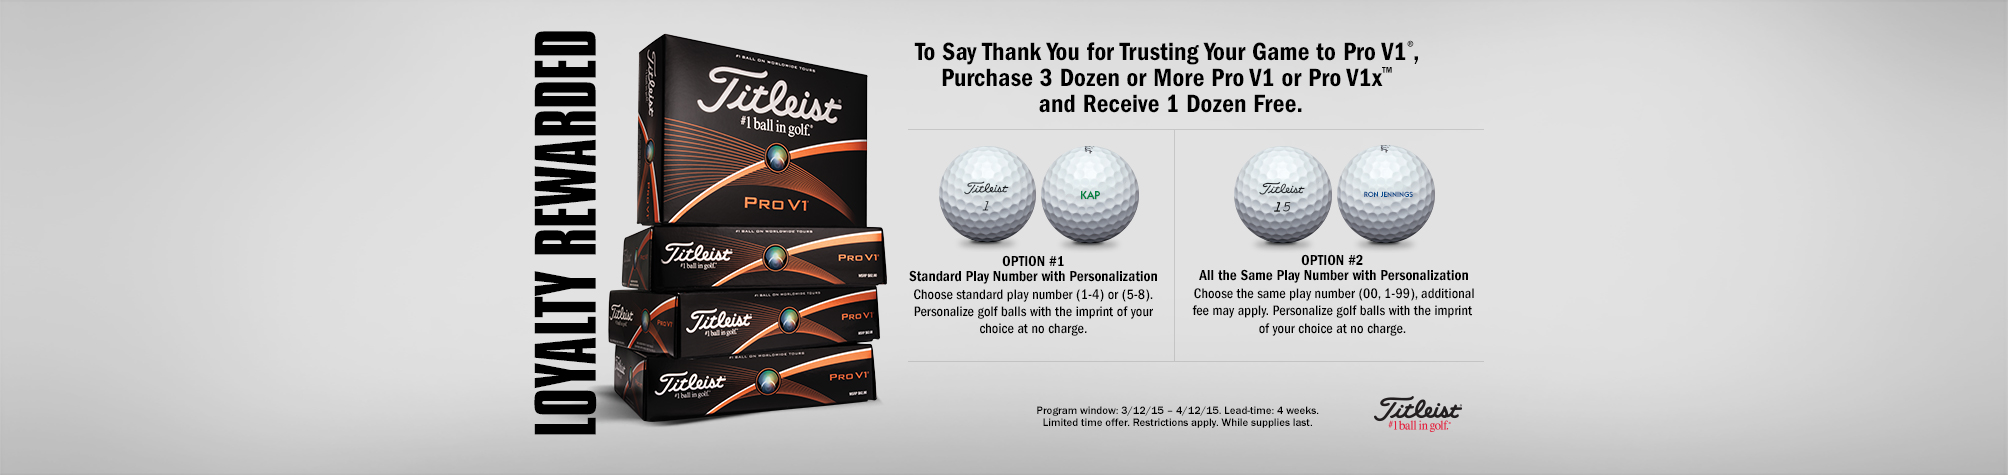 Titleist Loyalty Rewarded Promotion